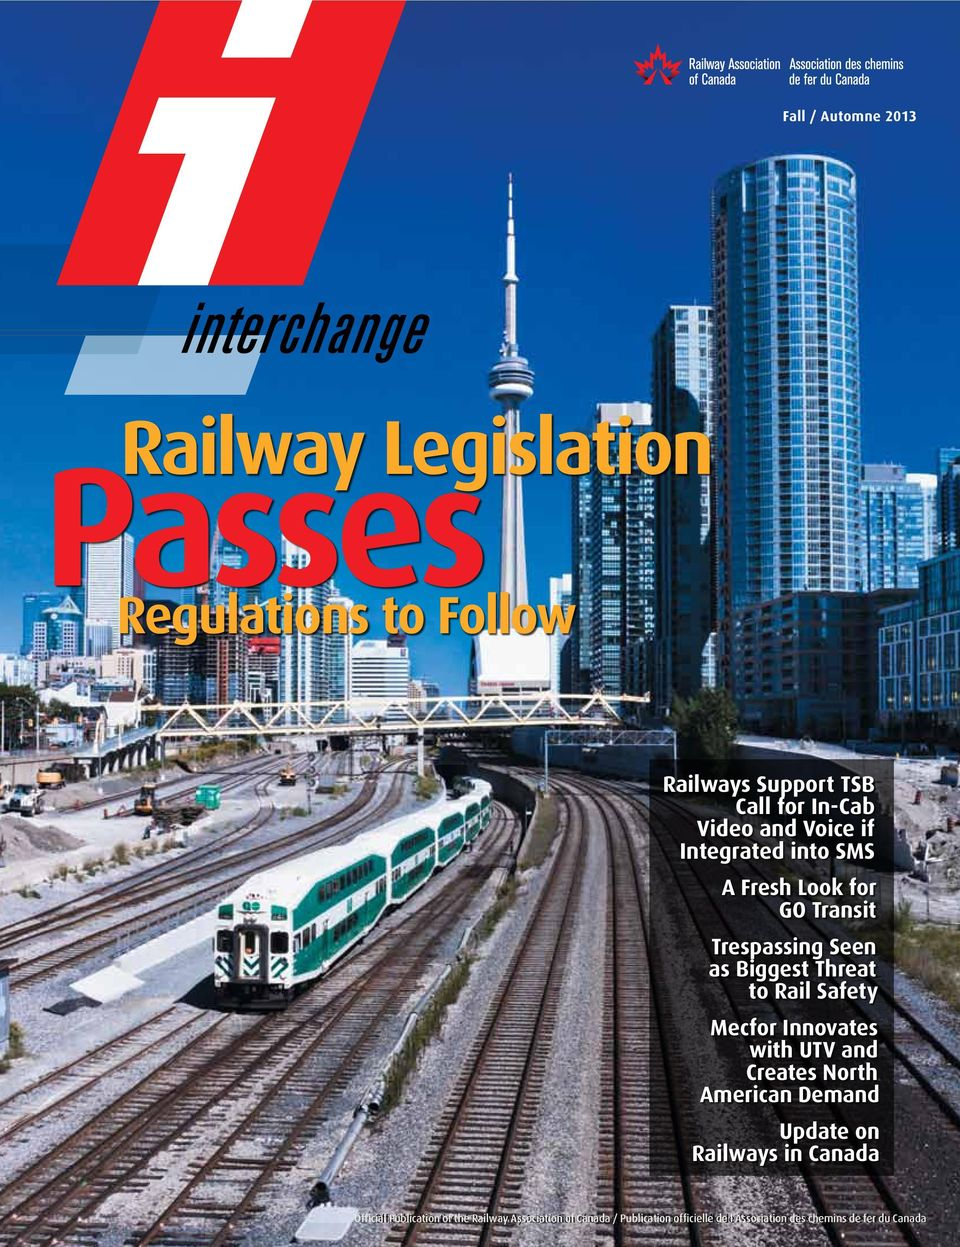 Innovates with UTV and Creates North American Demand Update on Railways in Canada Official Official Publication of